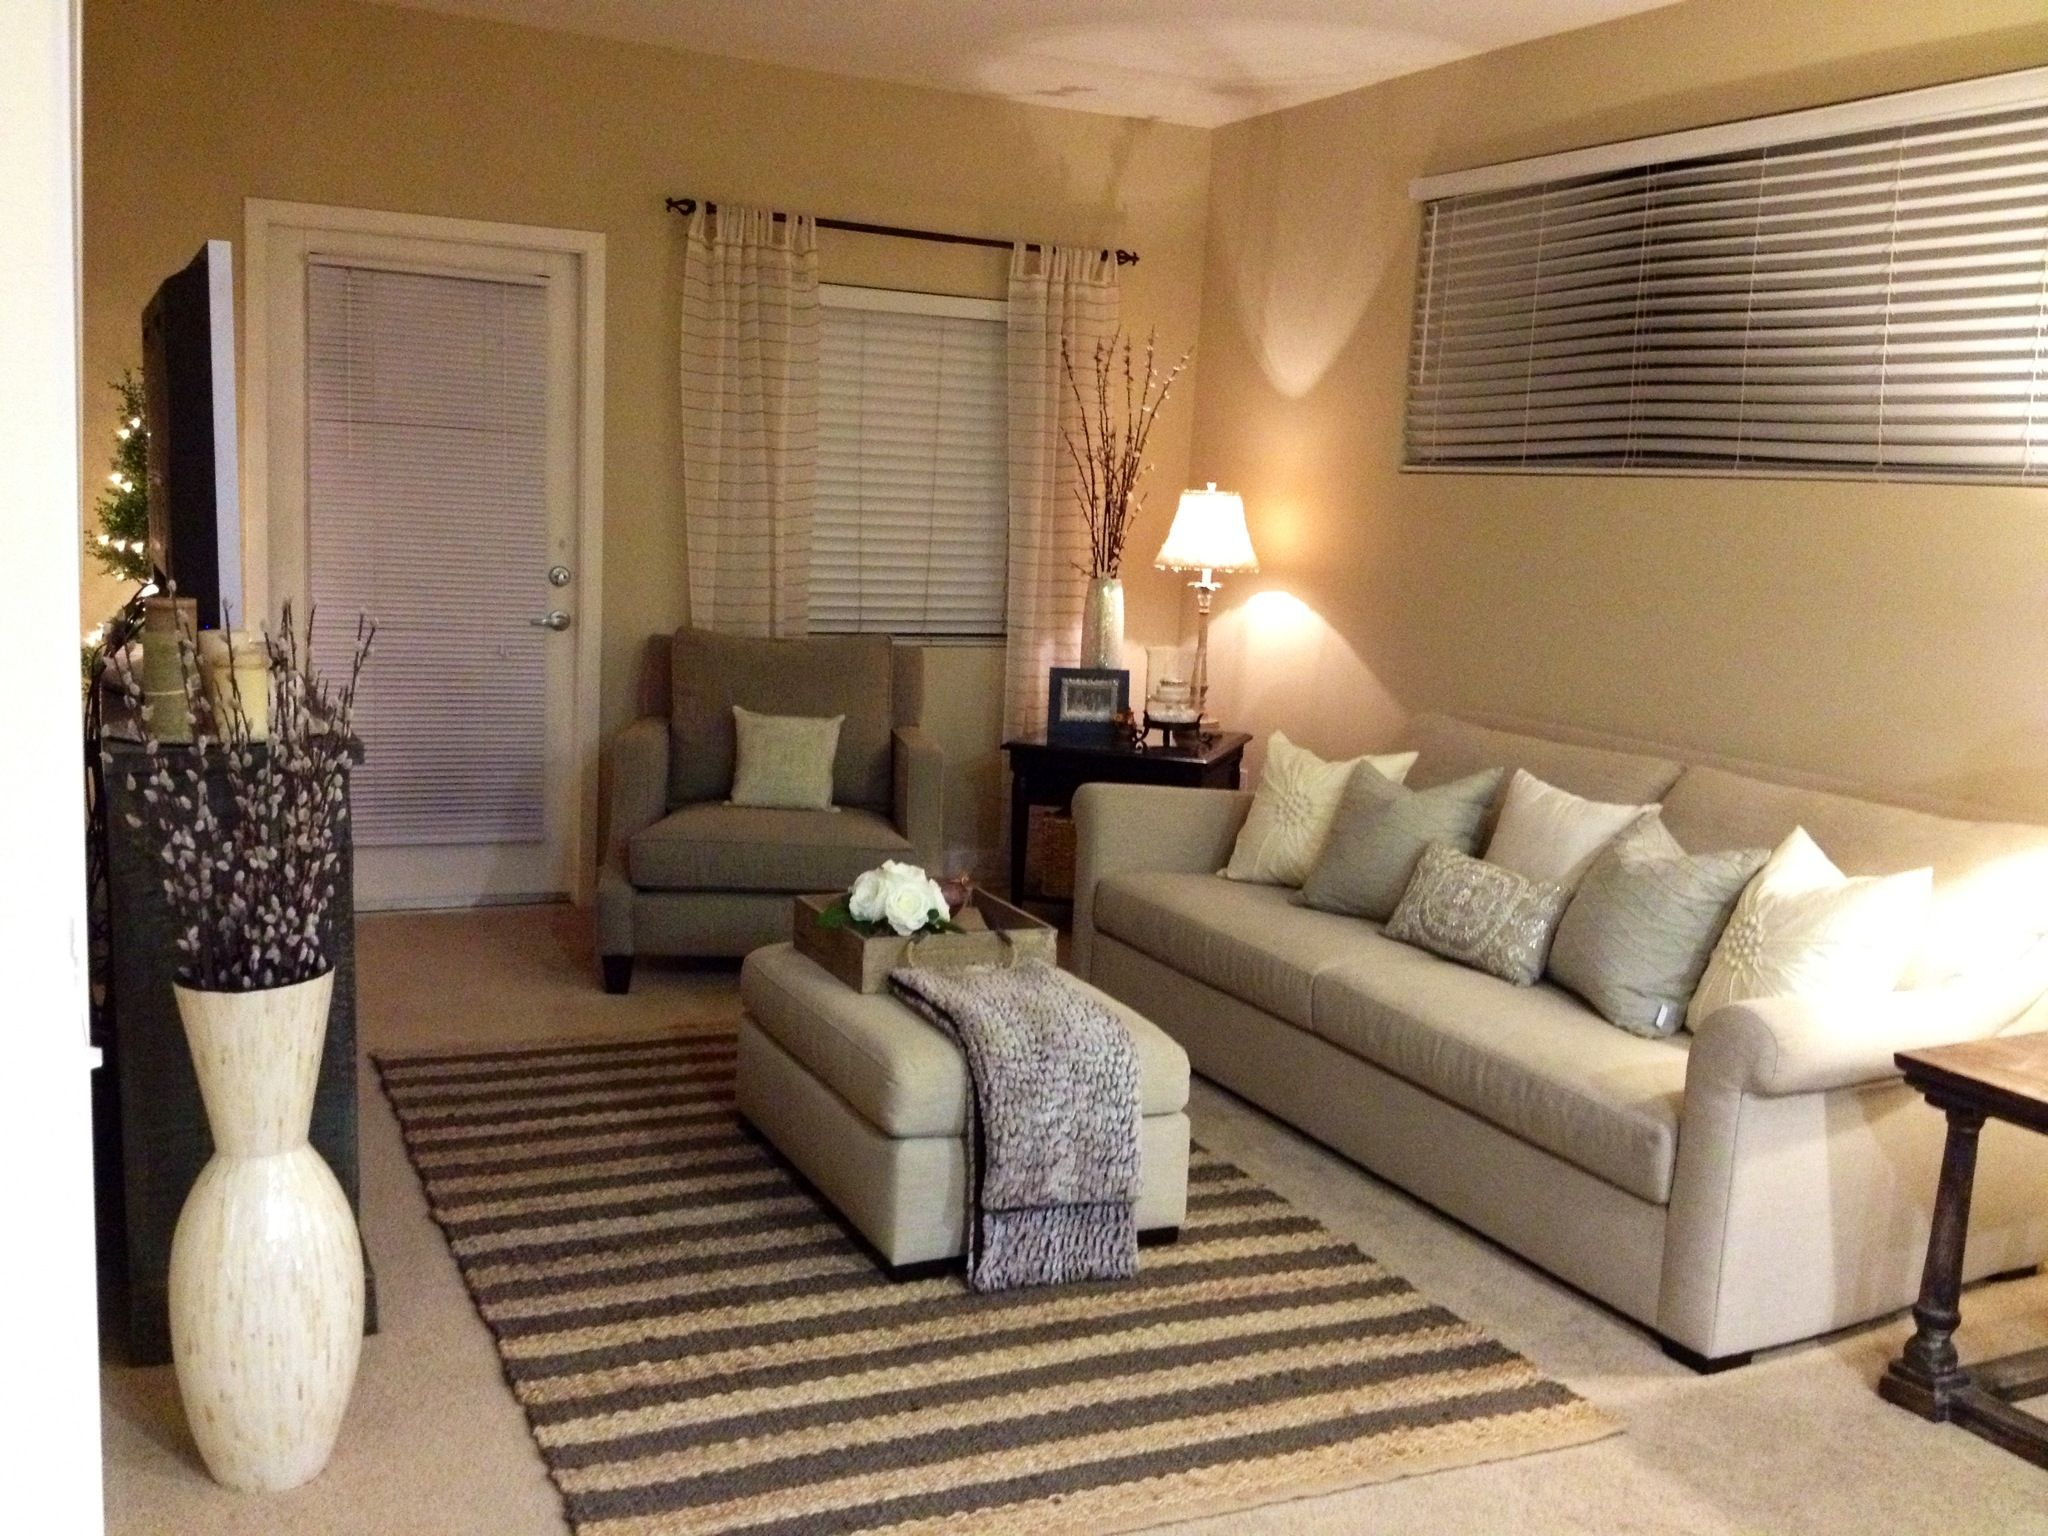 Living Room Small Spaces Decorating Living Room Small Living Rooms Small Spaces Decorating Ideas